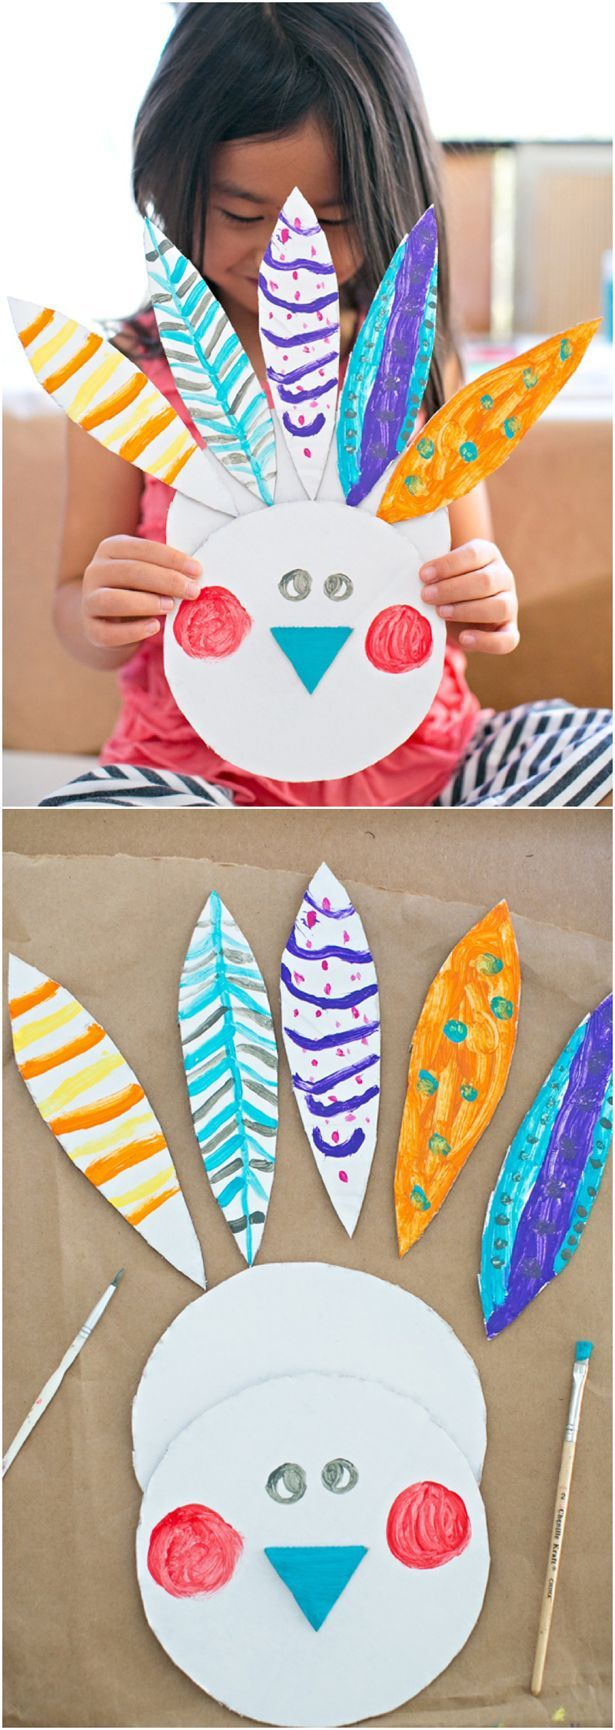 easy painted cardboard turkey craft cute thanksgiving art project